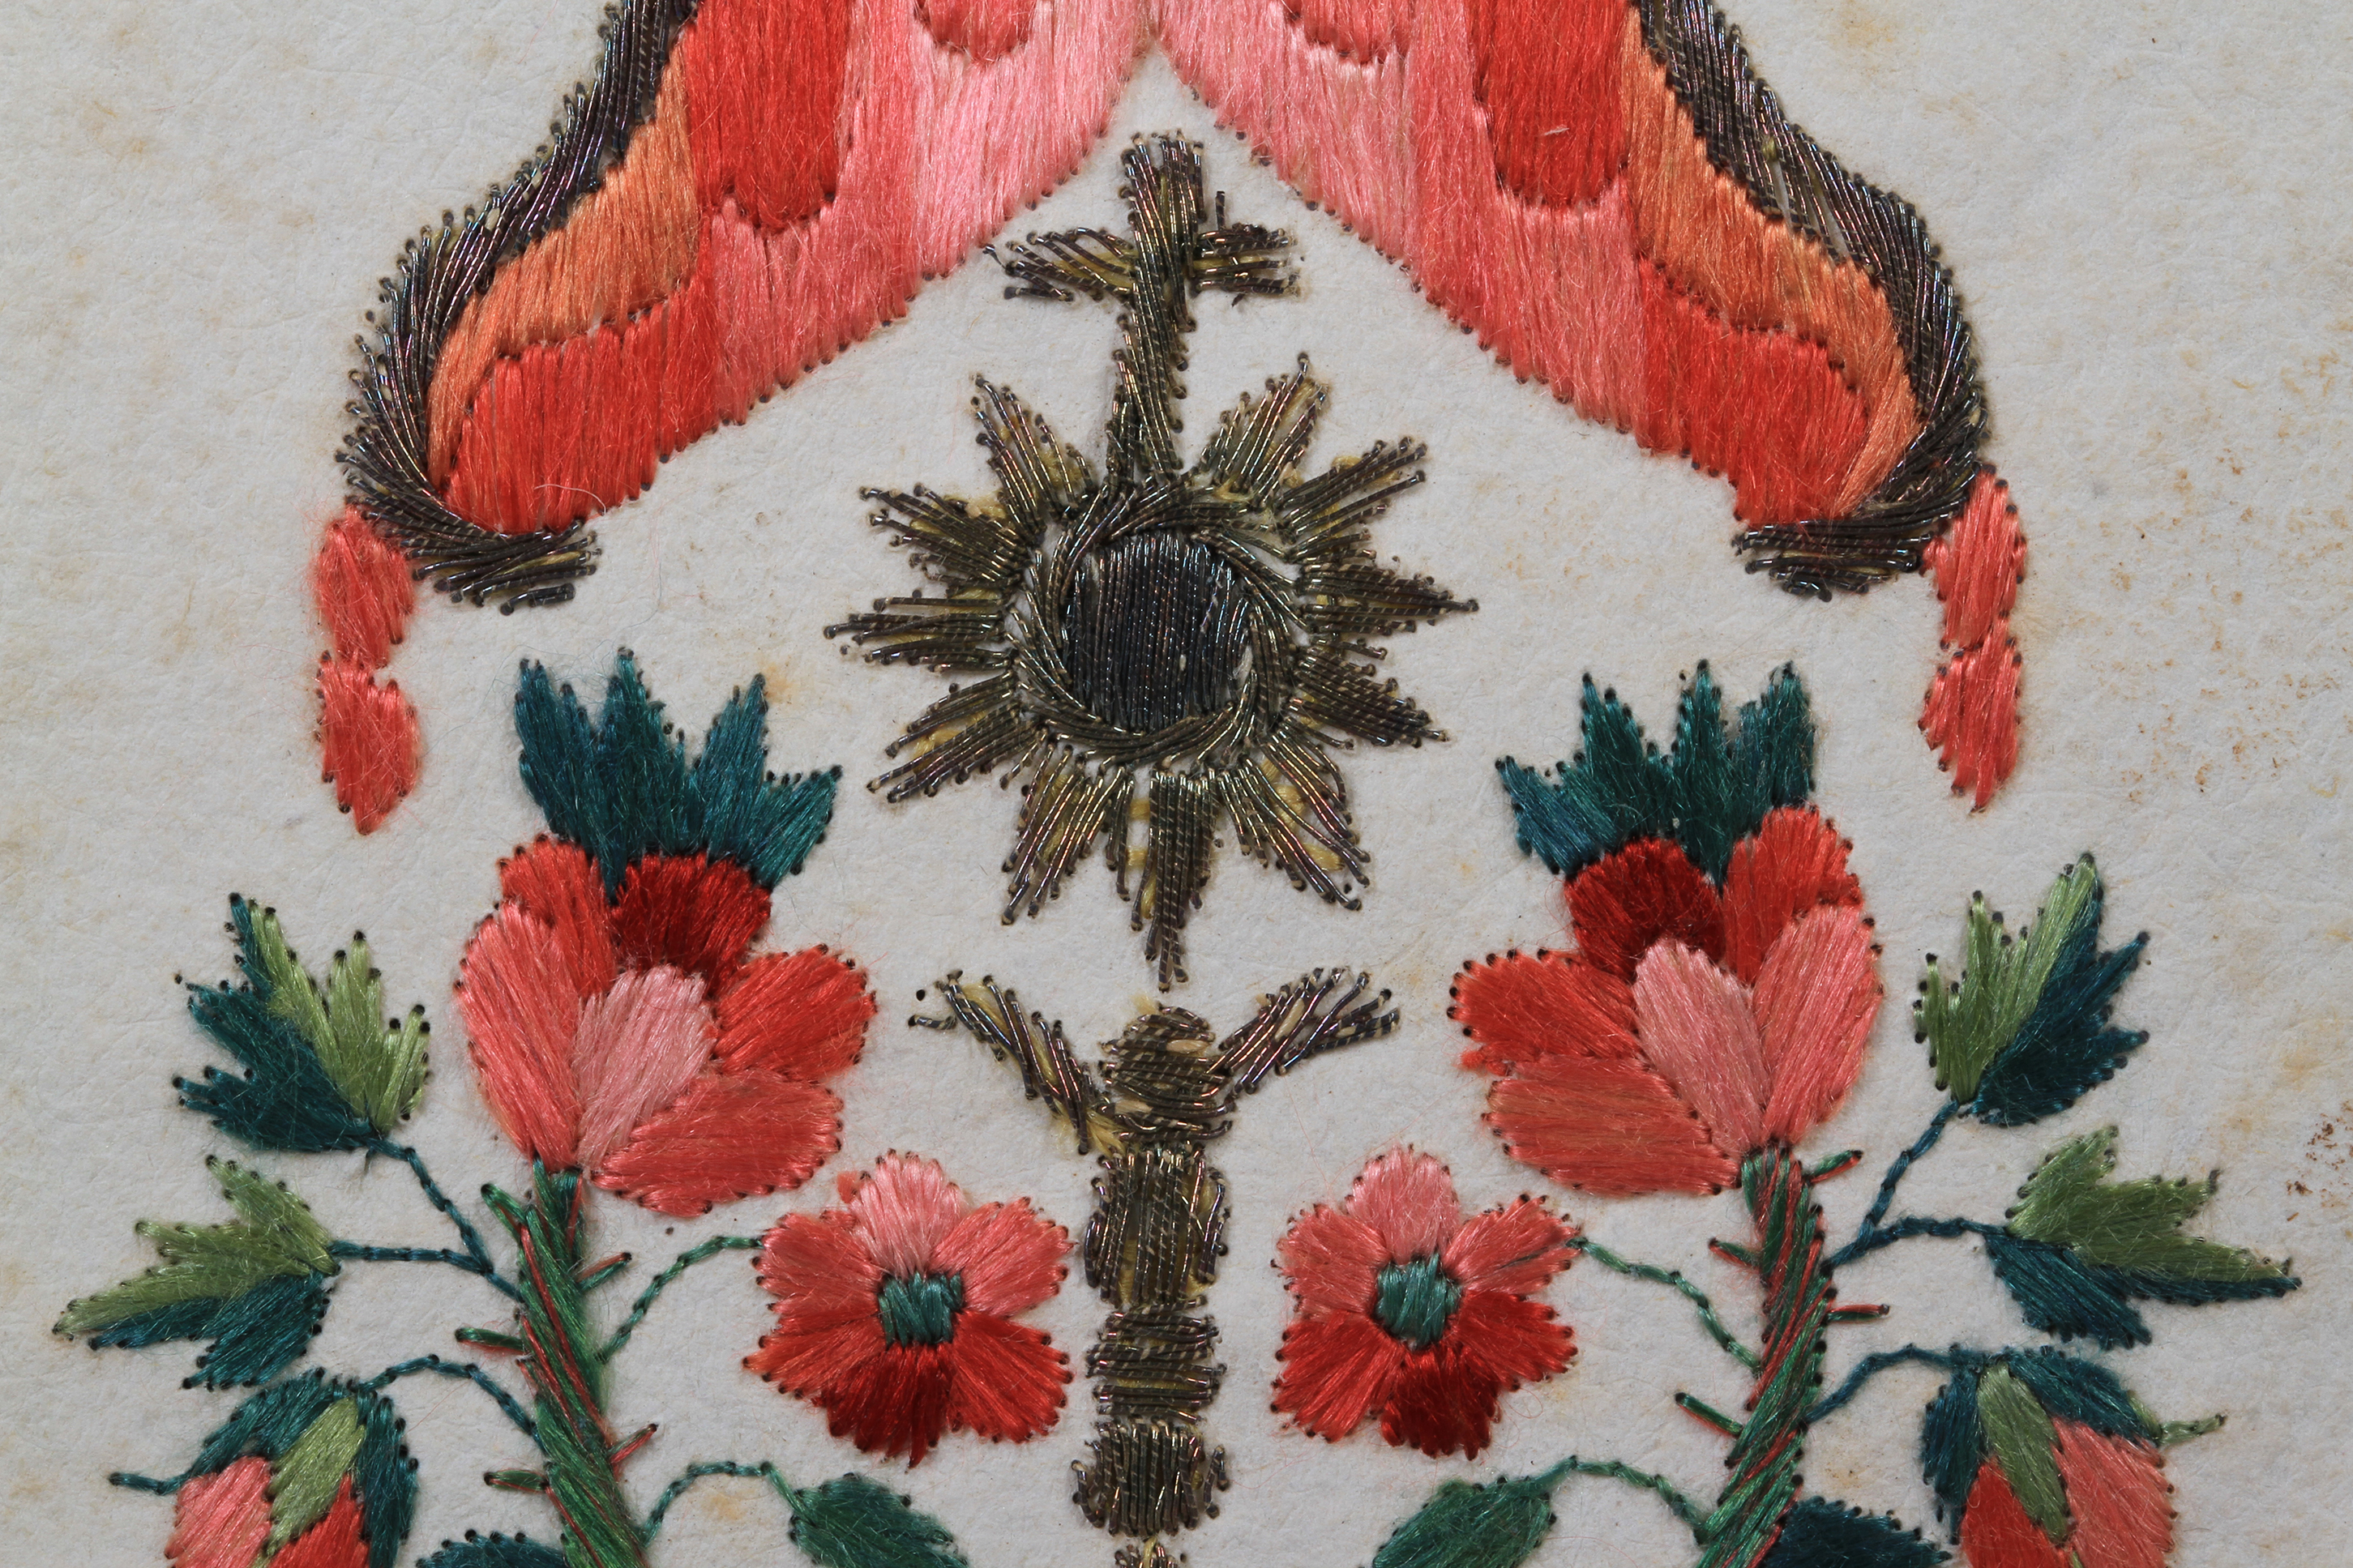 Lot 3 - AN EARLY 18TH CENTURY FRENCH CONVENT WORK 'COLIFICHET' CIRCA 1715, double sided embroidery in